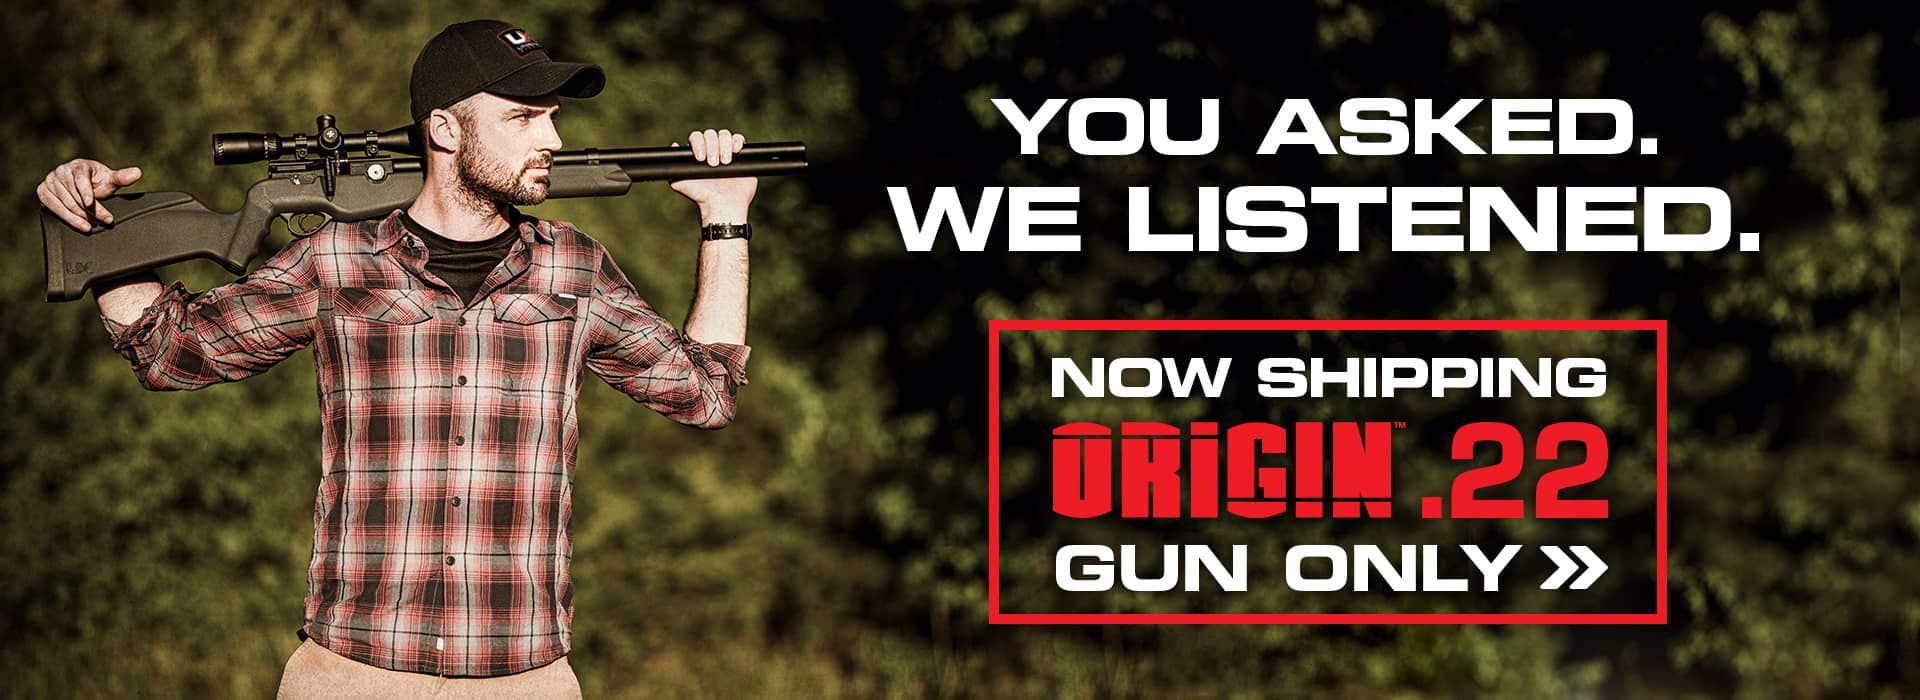 You Asked. We Listened. Now shipping the Umarex Origin .22 Gun Only